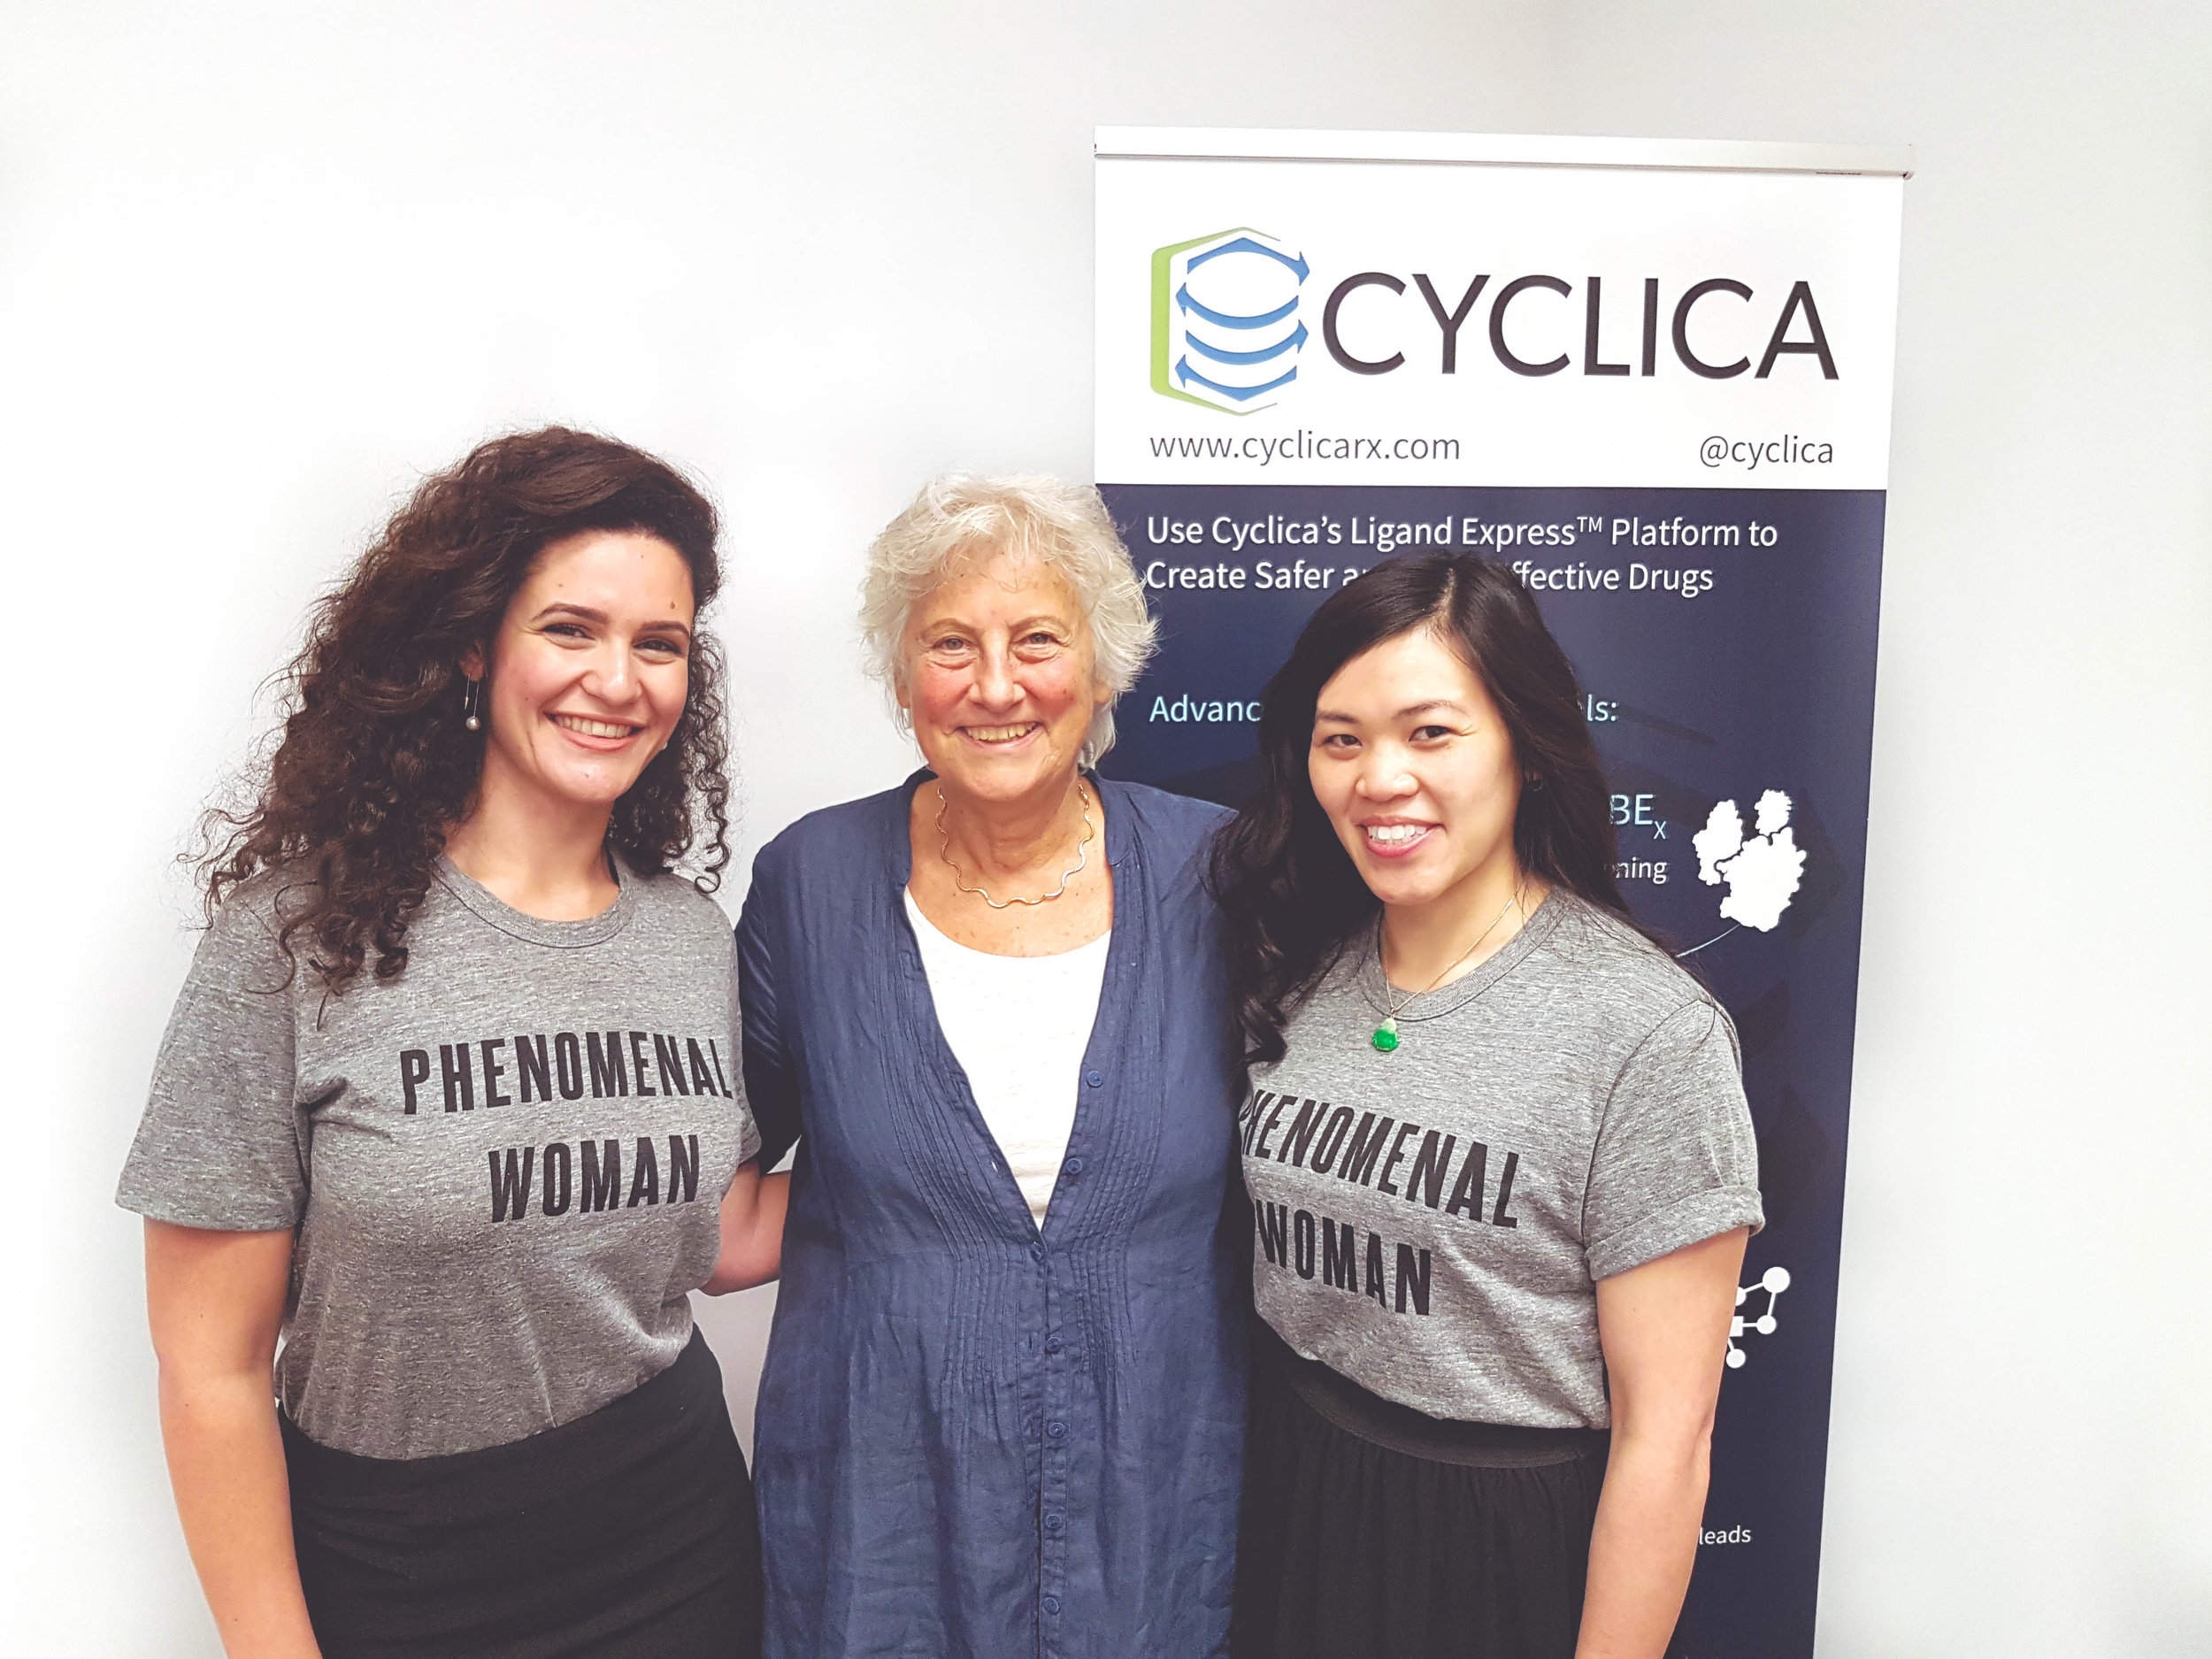 """From left to right: Sana Alwash, Shoshana Wodak, and Sonia Seto. """"Phenomenal Women"""" t-shirts were purchased from  Omaze , an online fundraising platform supporting critical causes. Proceeds were donated to Seven Fearless Women's Organizations."""